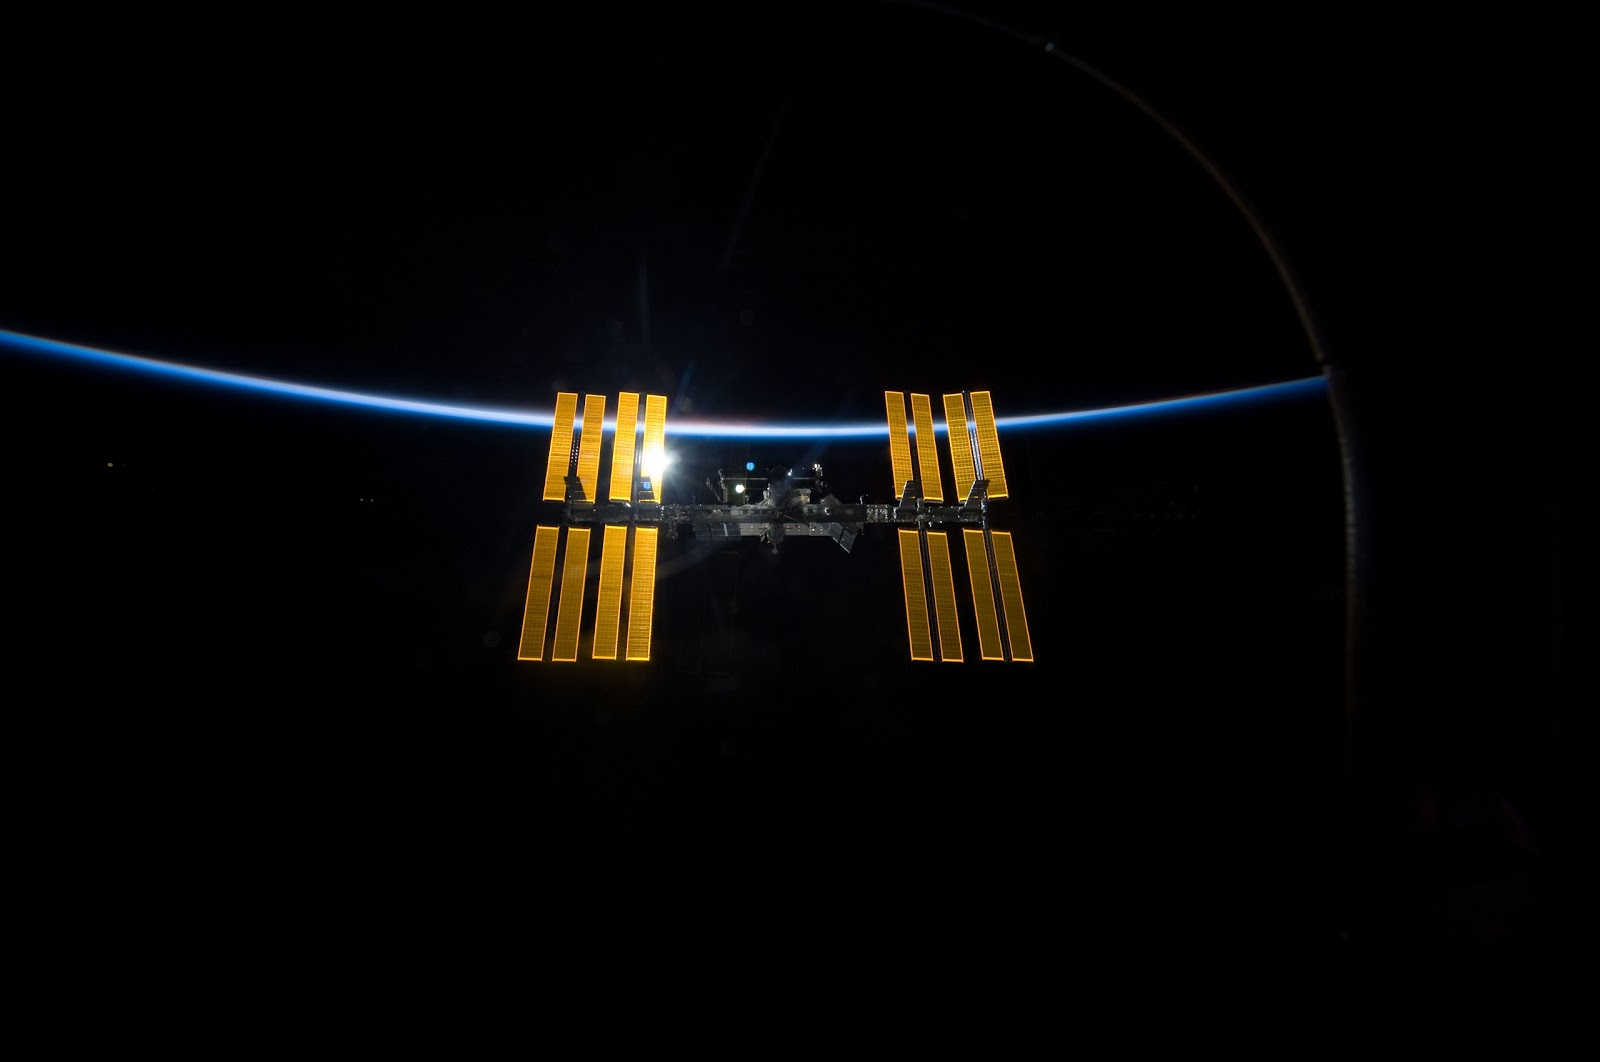 international space station from earth to current transportation - photo #24